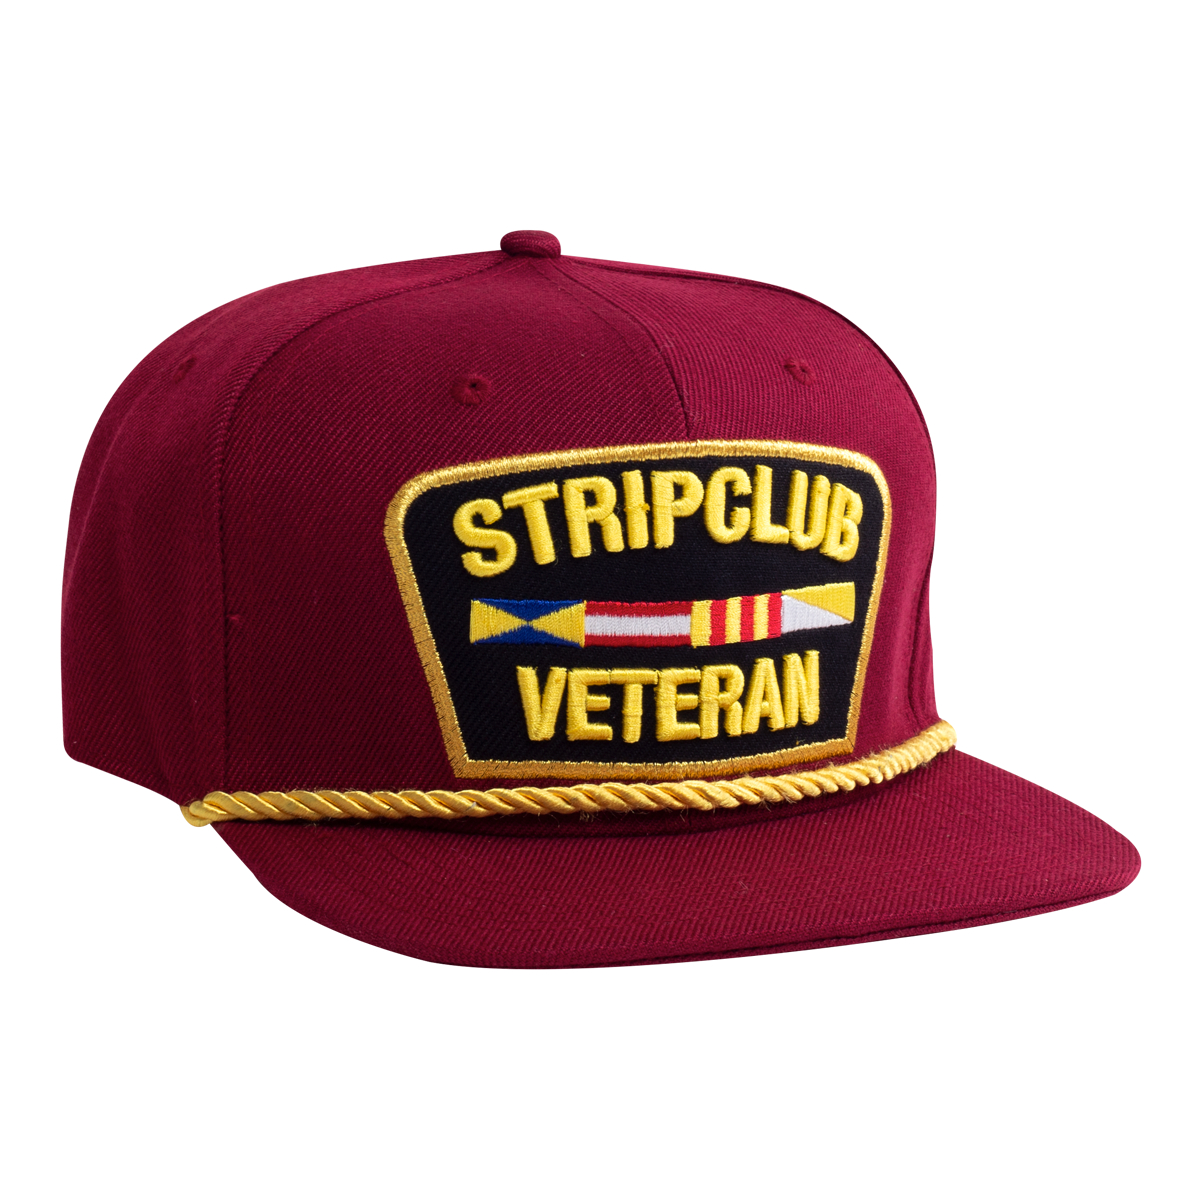 Strip Club Veteran Snapback - Red